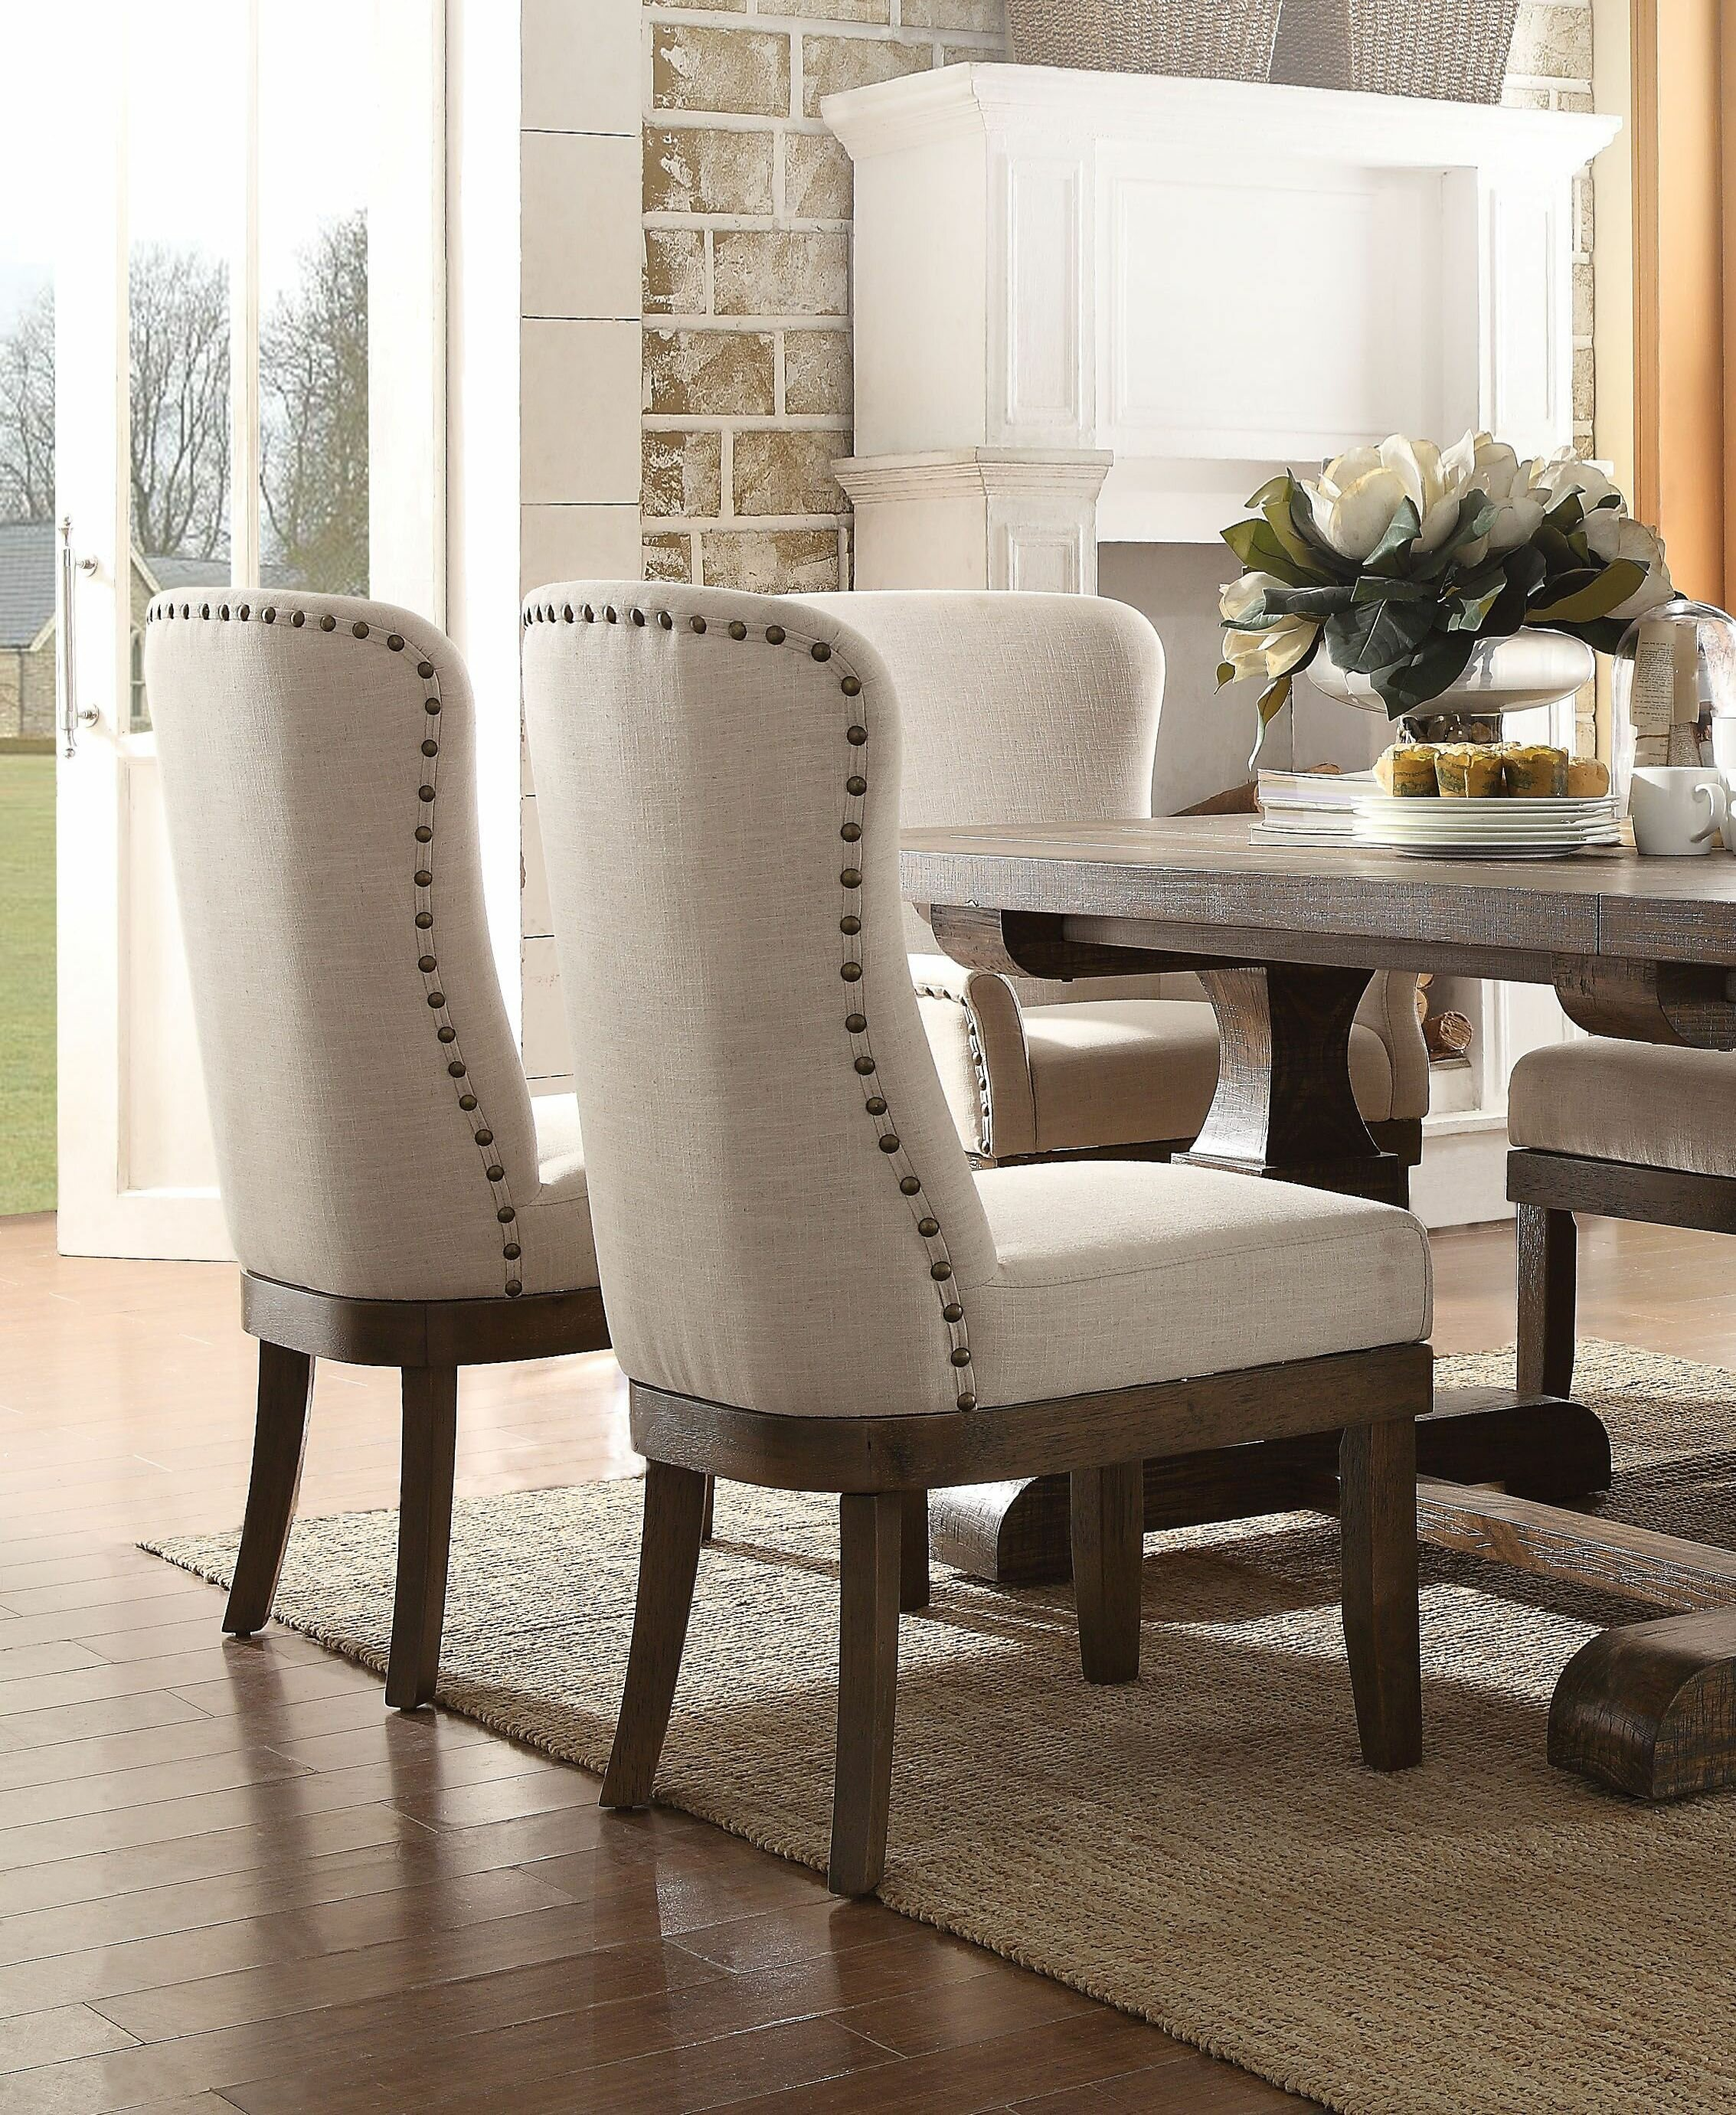 Gracie Oaks Onsted Upholstered Dining Chair Reviews Wayfair - Curved-upholstered-dining-chair